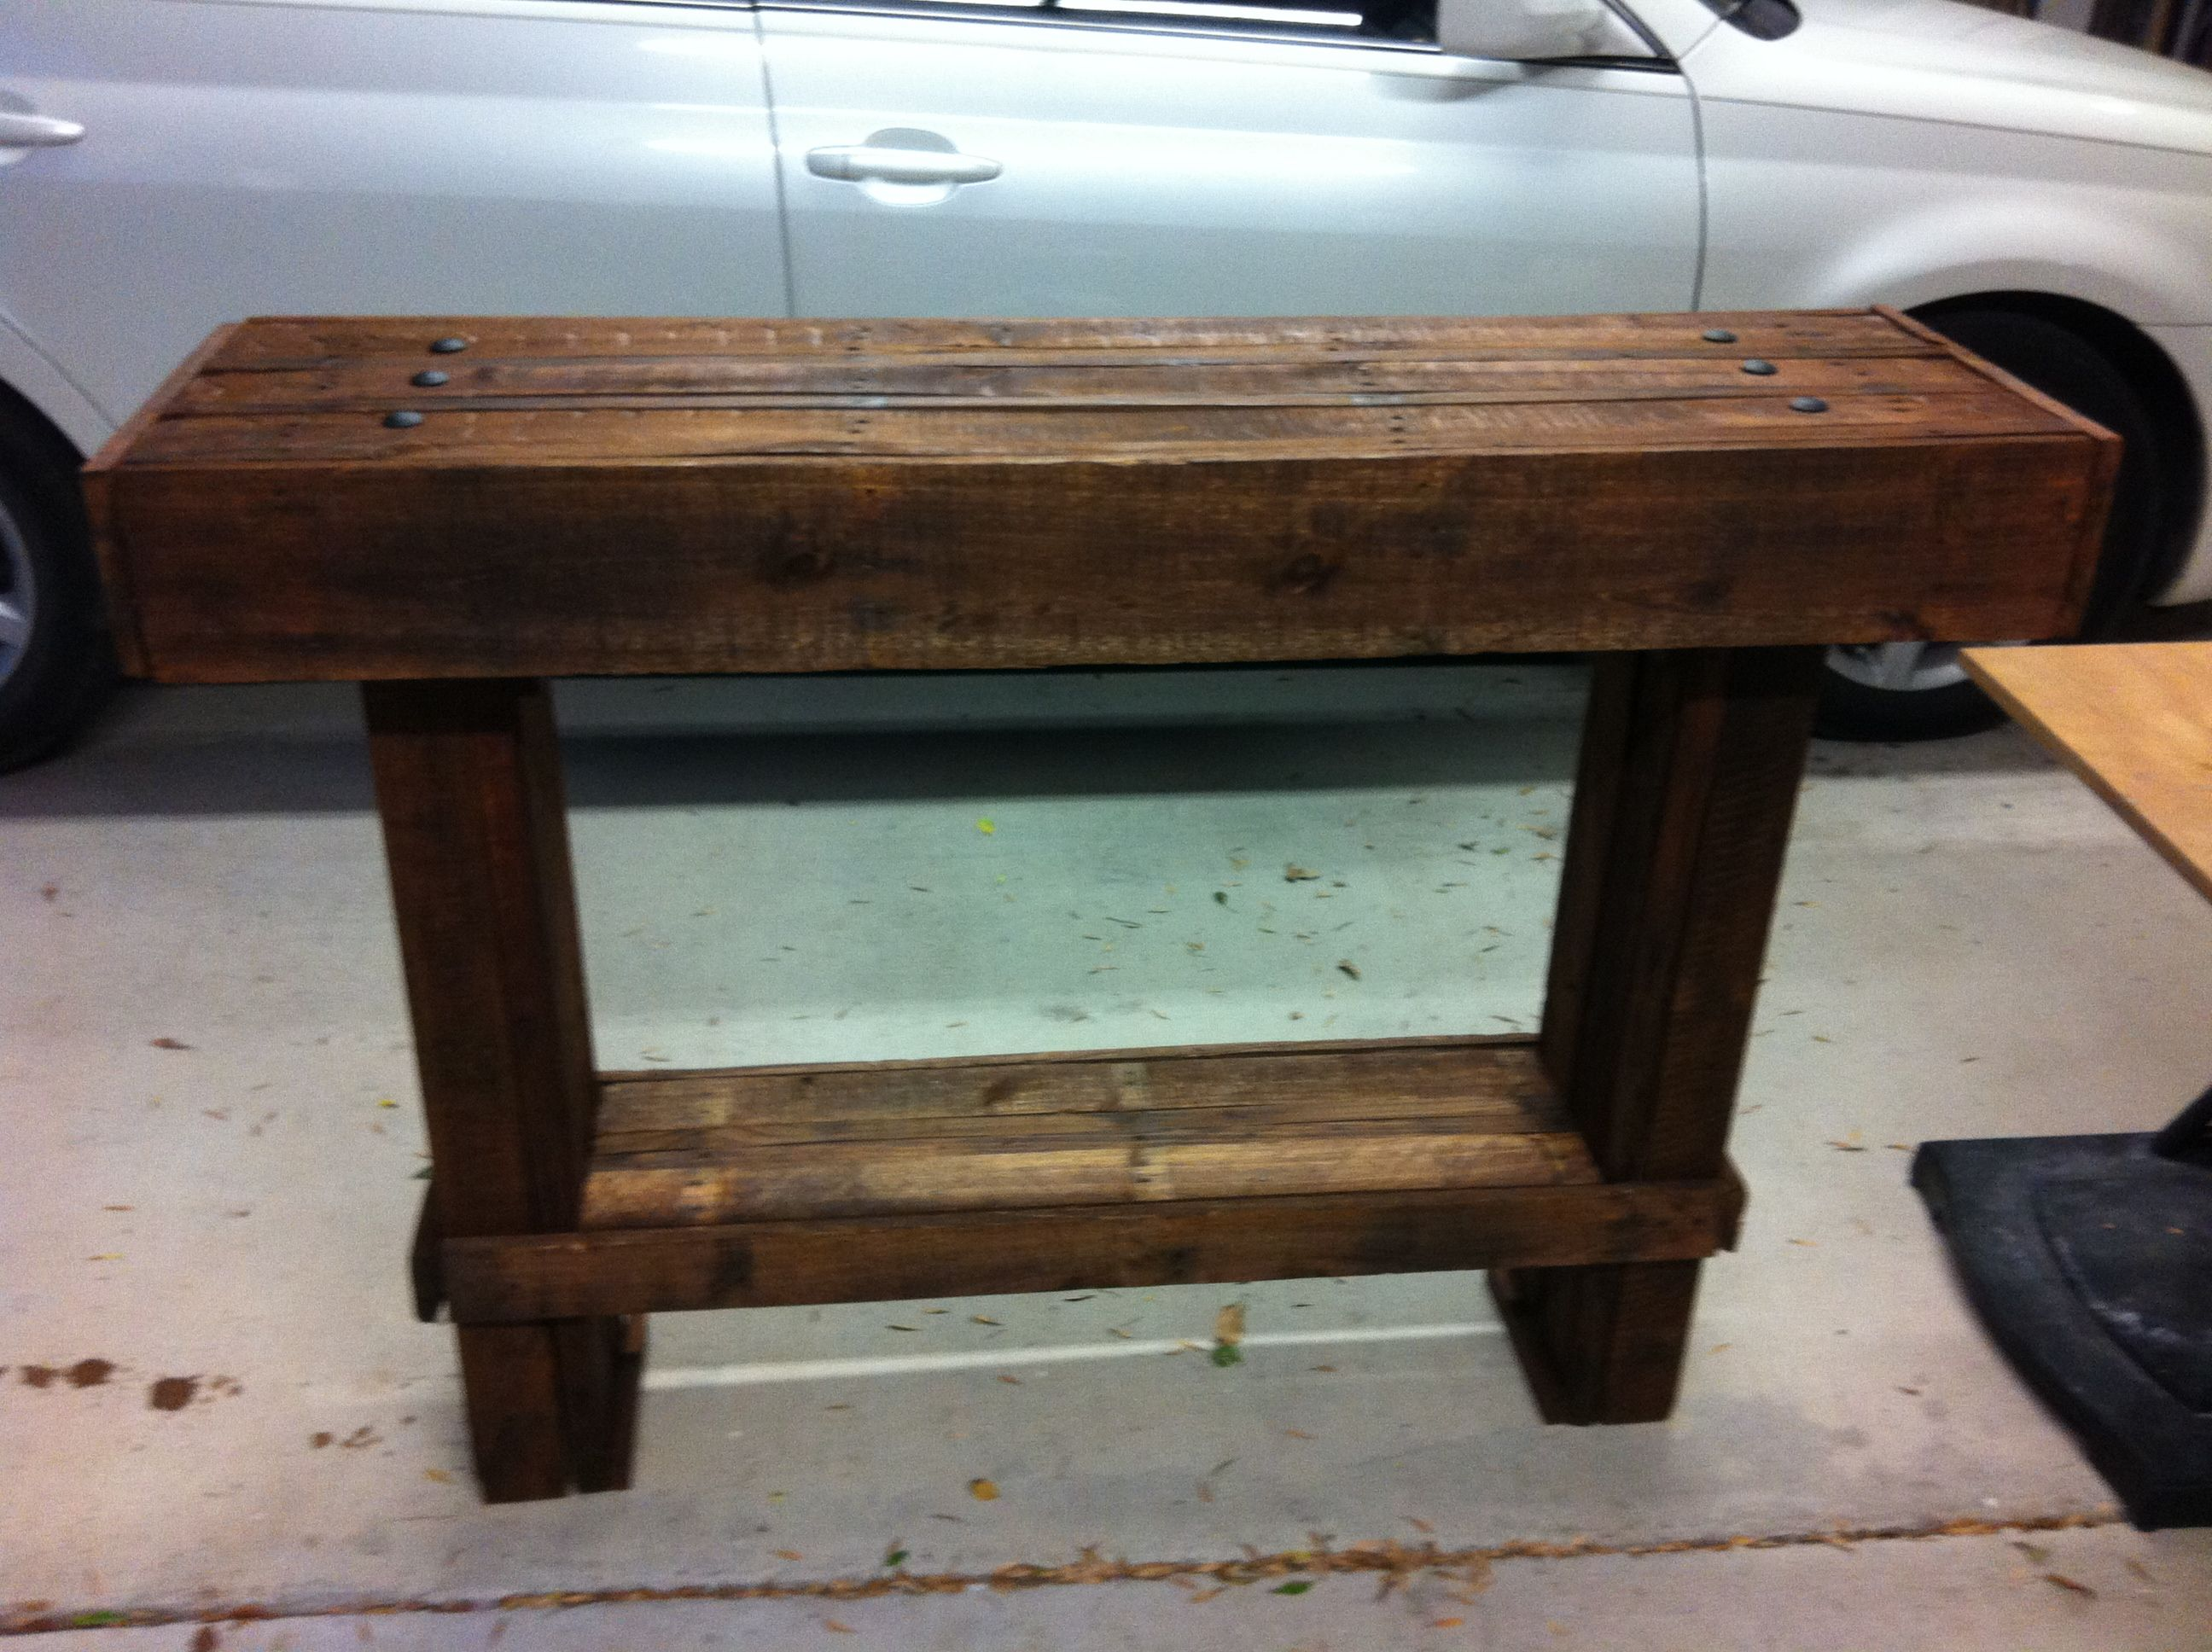 Foyer Table Made From Pallets : Diy foyer table made of pallet wood pinterest